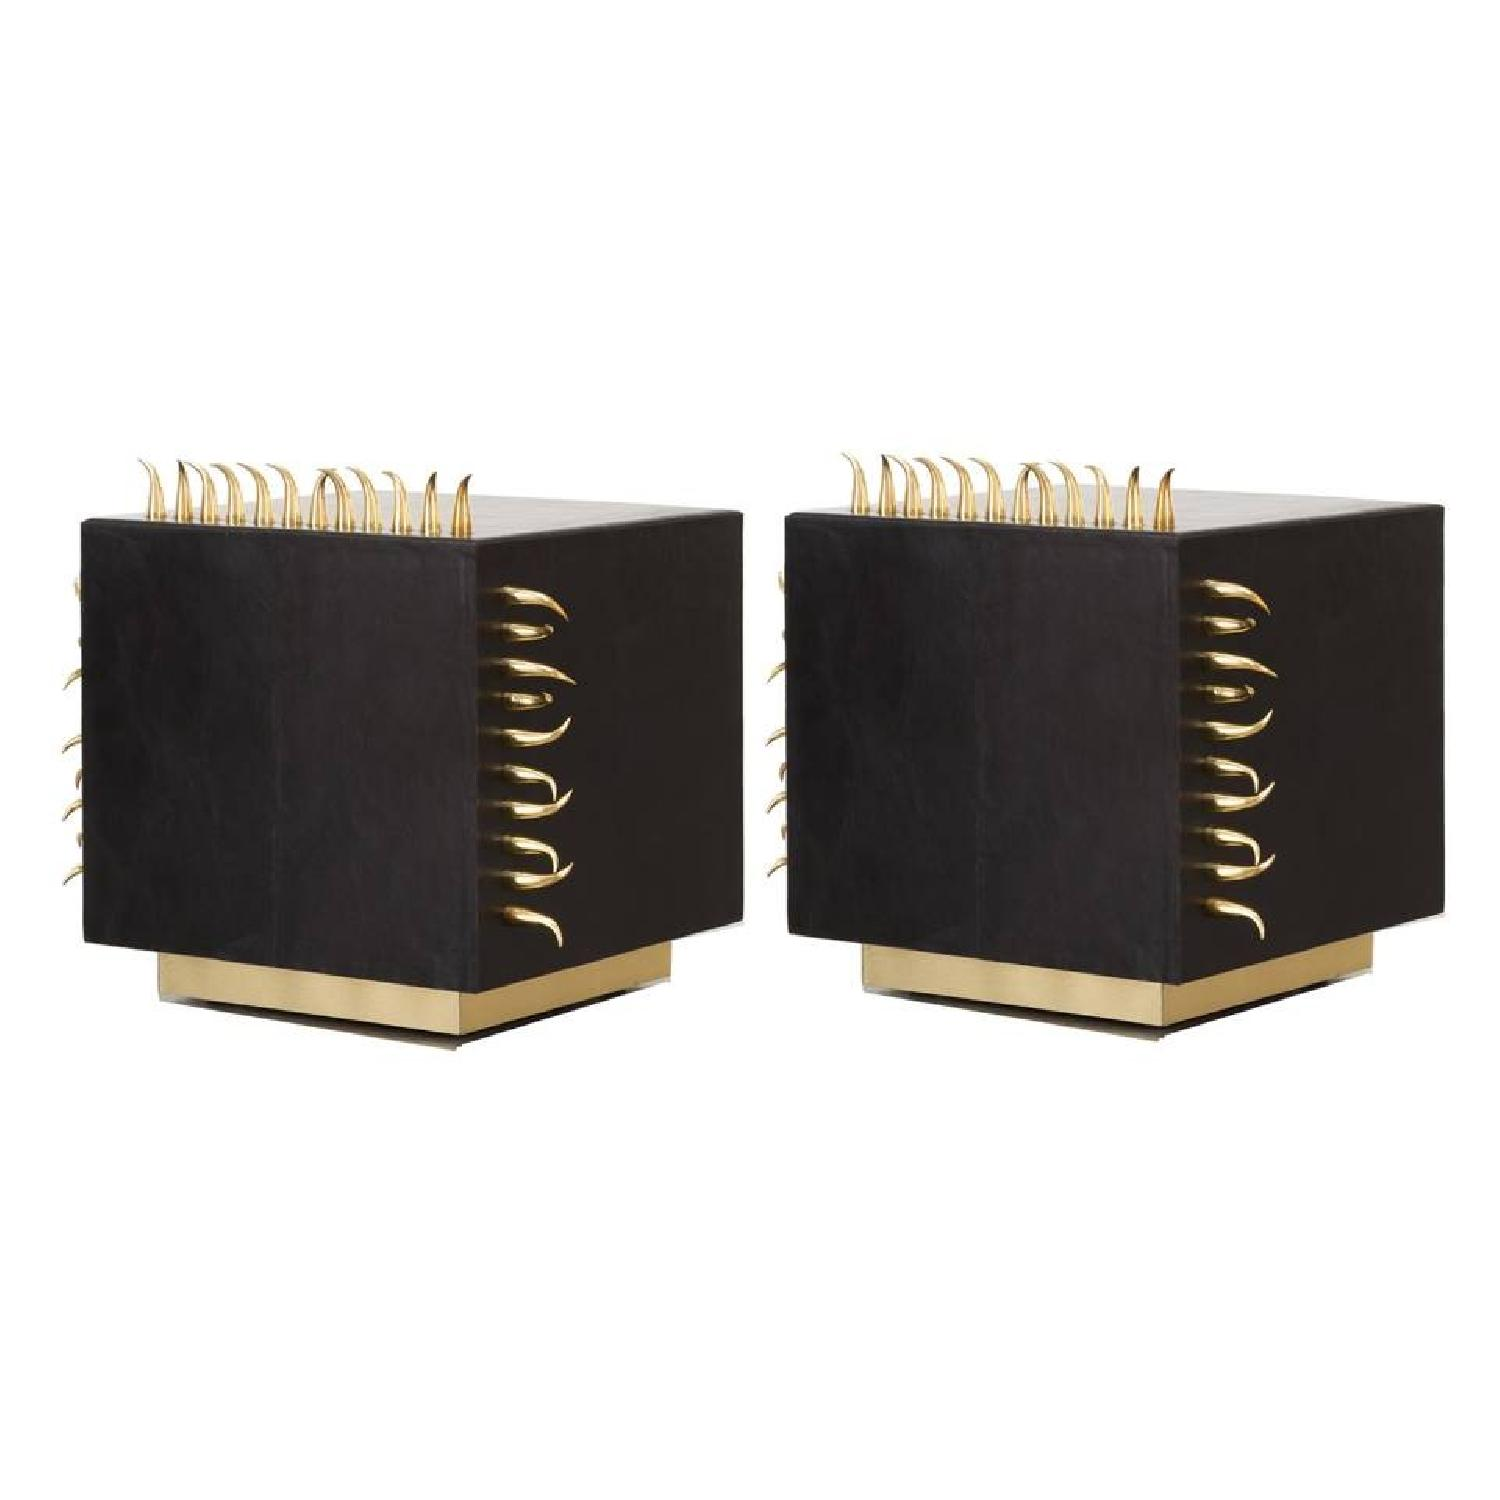 Designe Gallerie Black Leather Side Tables